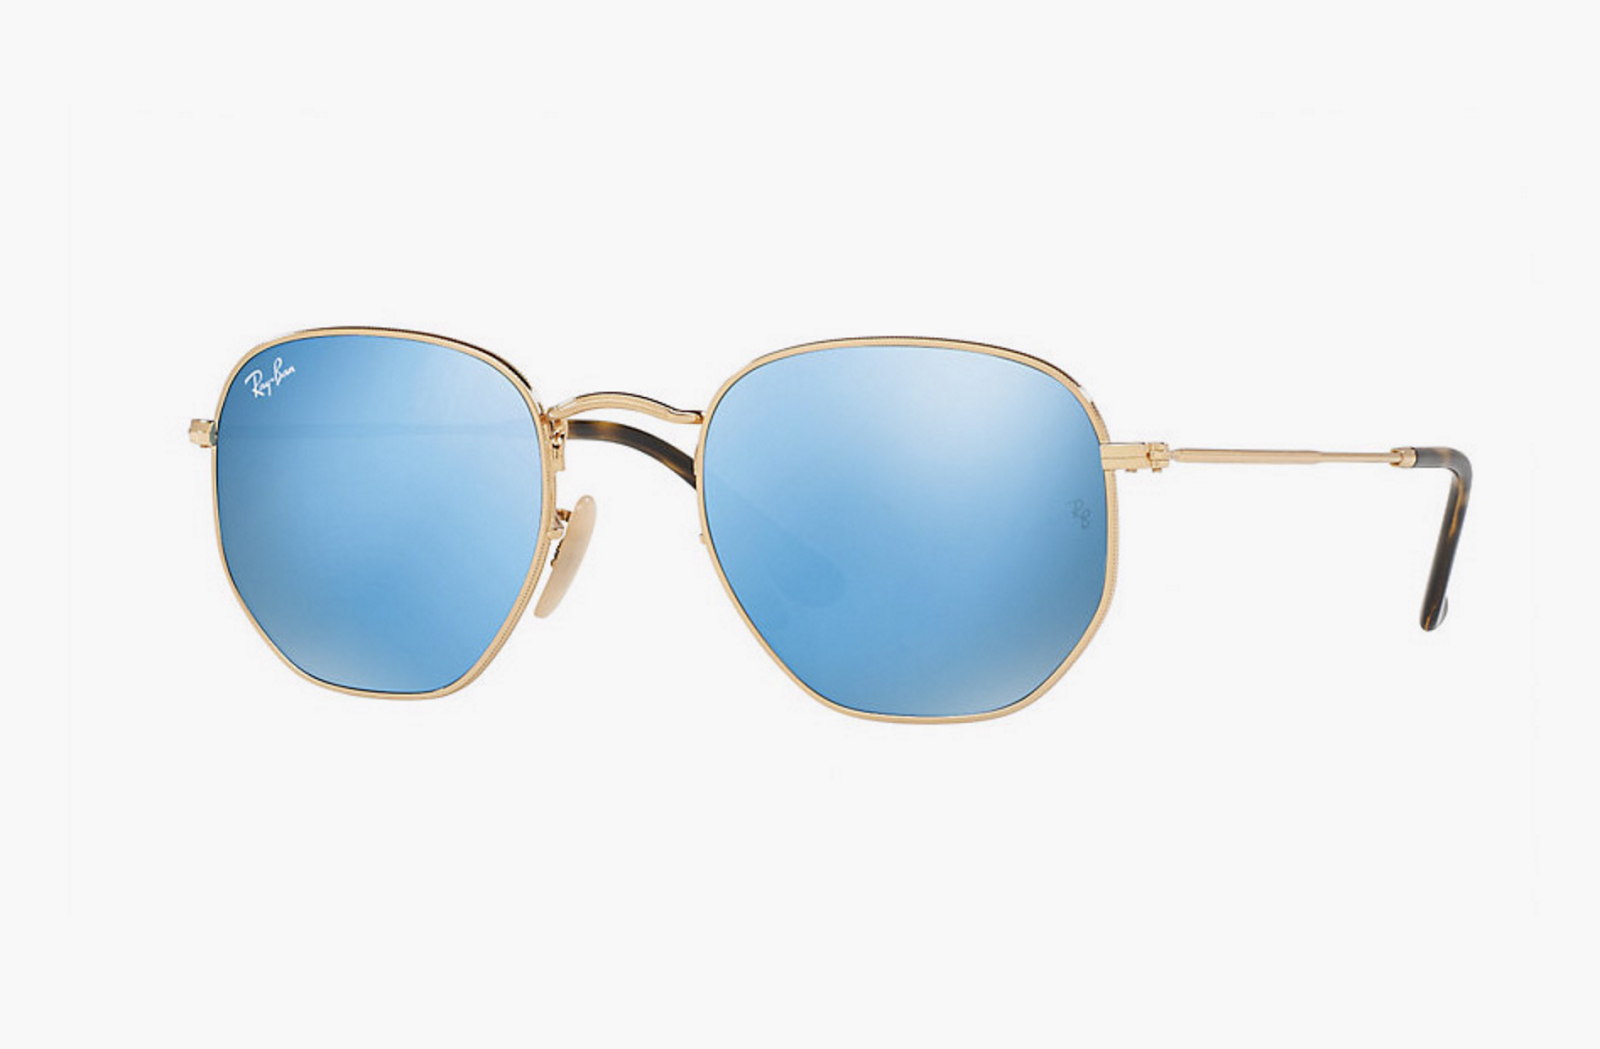 ray ban new shape round sunglasses  ray ban flat hexagonal, oval and round lenses.